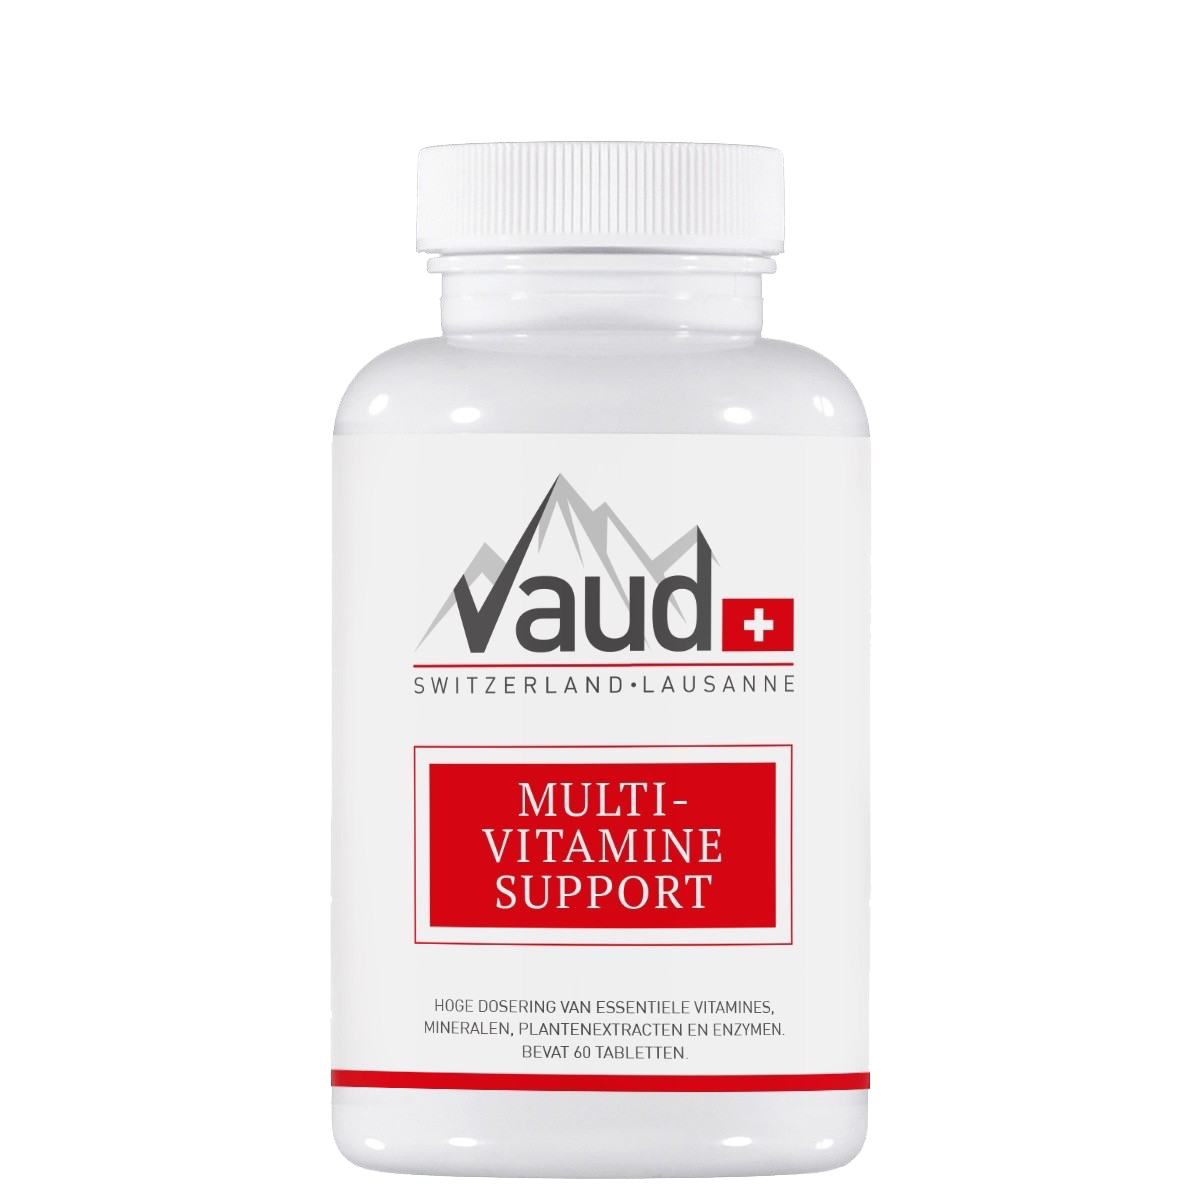 Multi-vitamine support